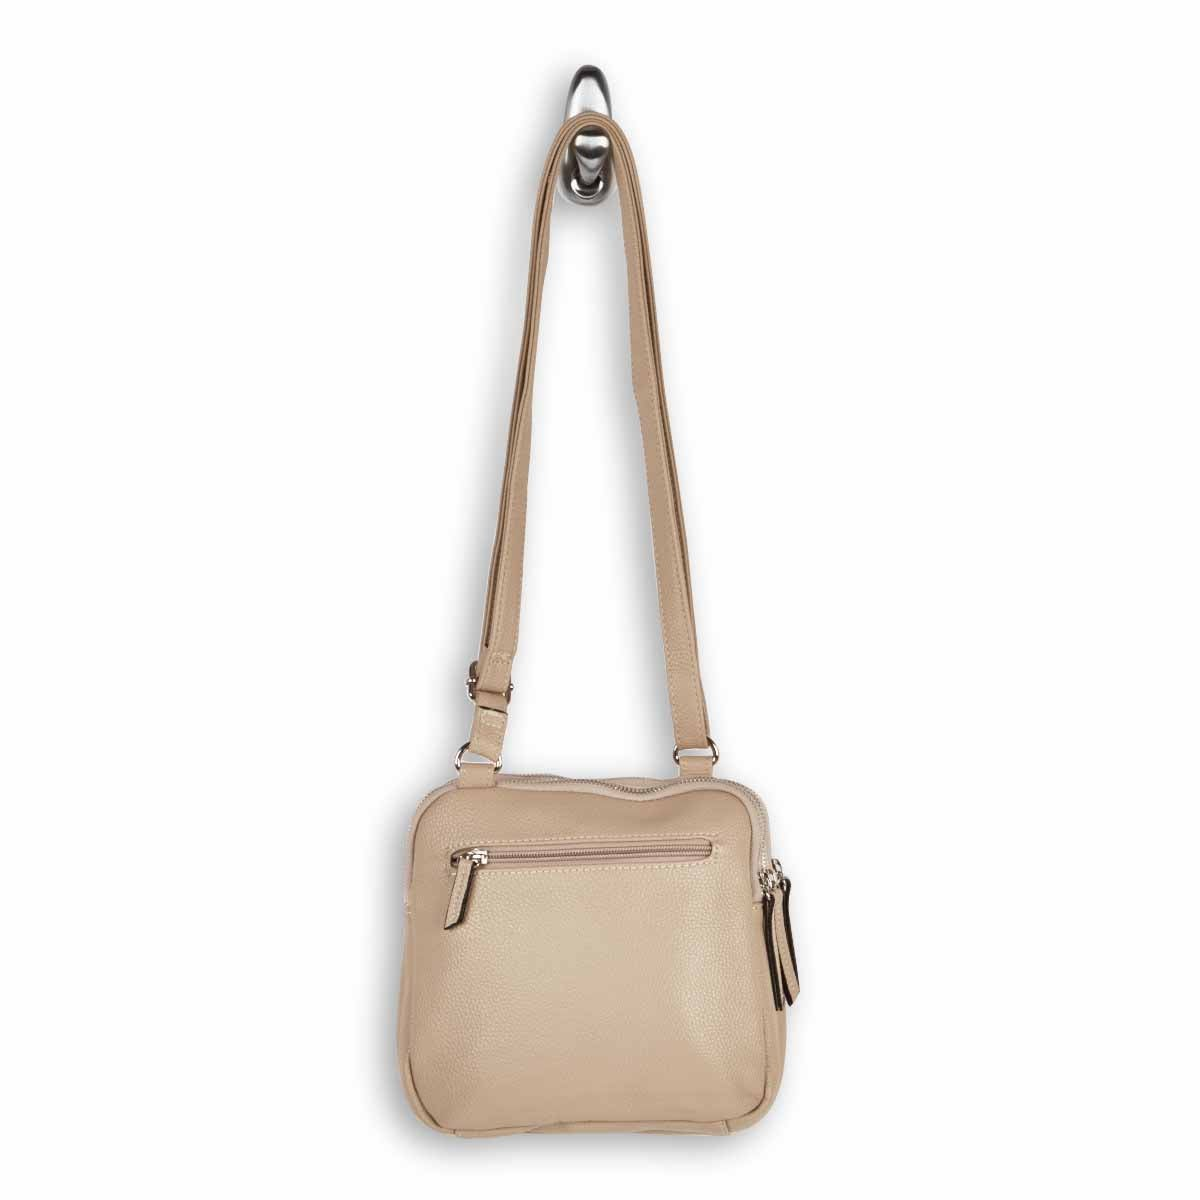 LdsRoots73 beige 3 compartment crossbody